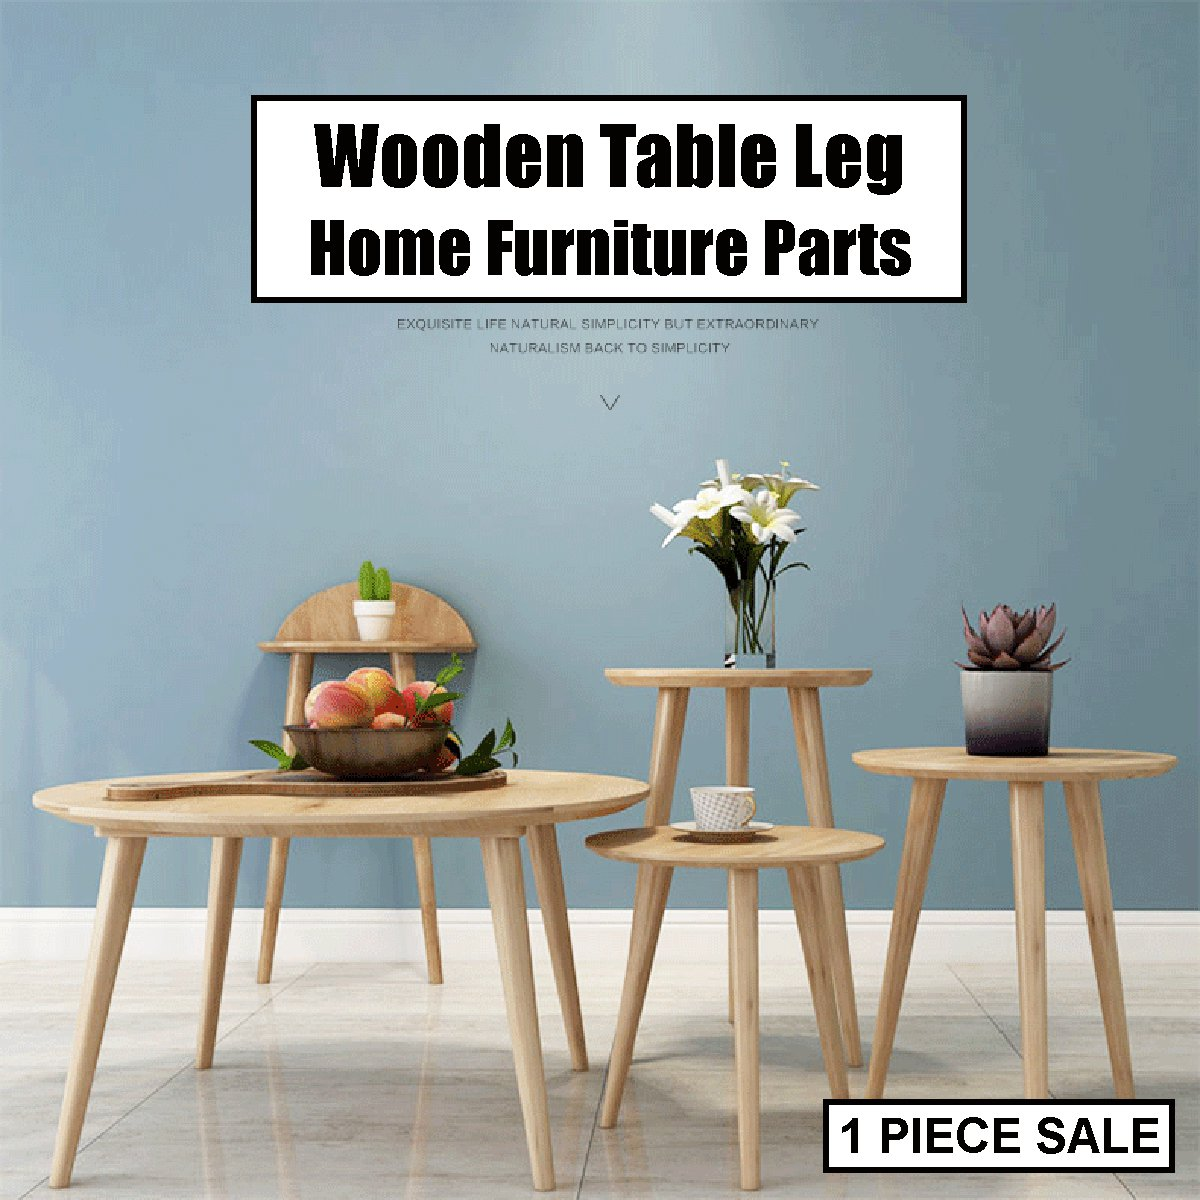 Wooden Table Leg 25/40/60cm Tapered Chair Stool Sofa Cabinet Furniture Hardware Screw Mounting Kits Set Home Furniture Parts